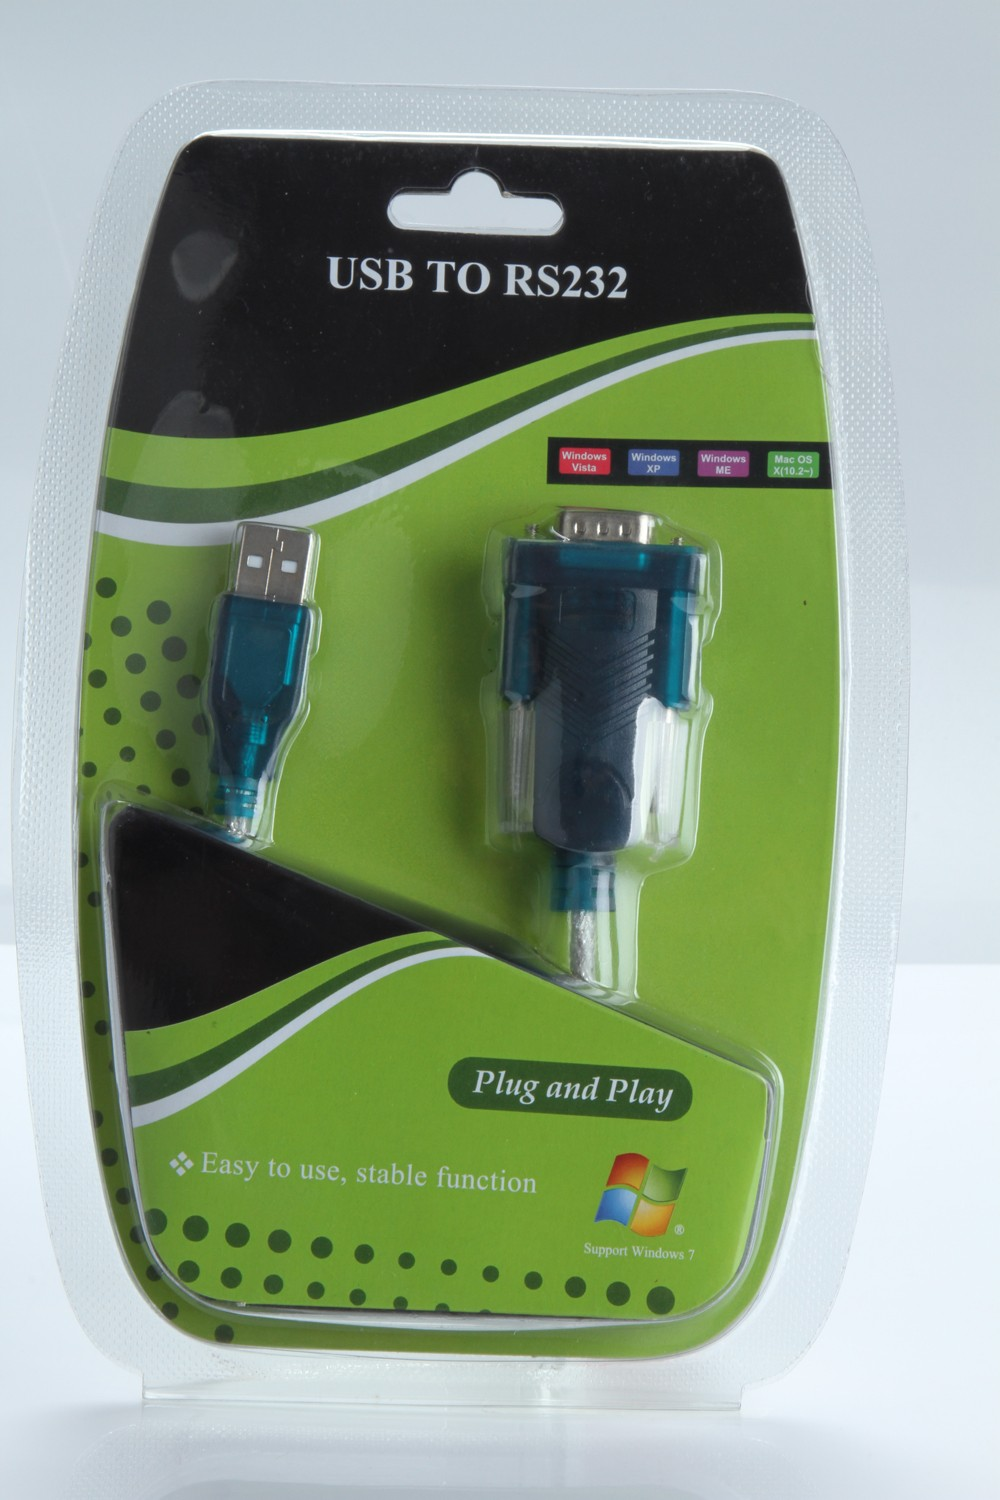 RS232 cable usb to RS232 serial adapter with pl2303 chip